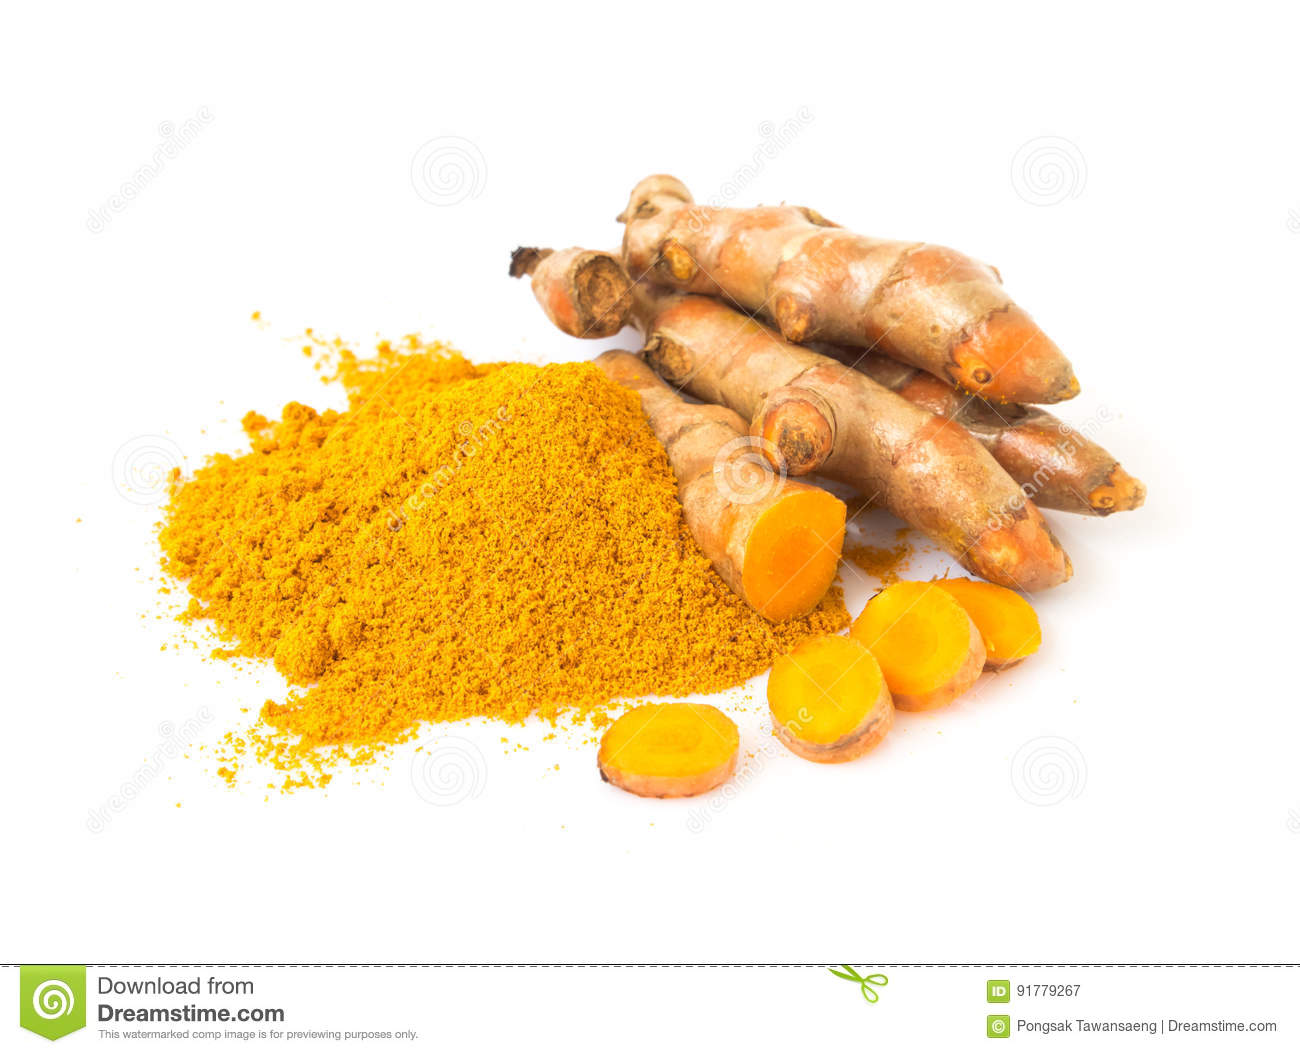 turmeric-power-fresh-turmeric-roots-white-background-her-herb-healthy-care-concept-91779267.jpg